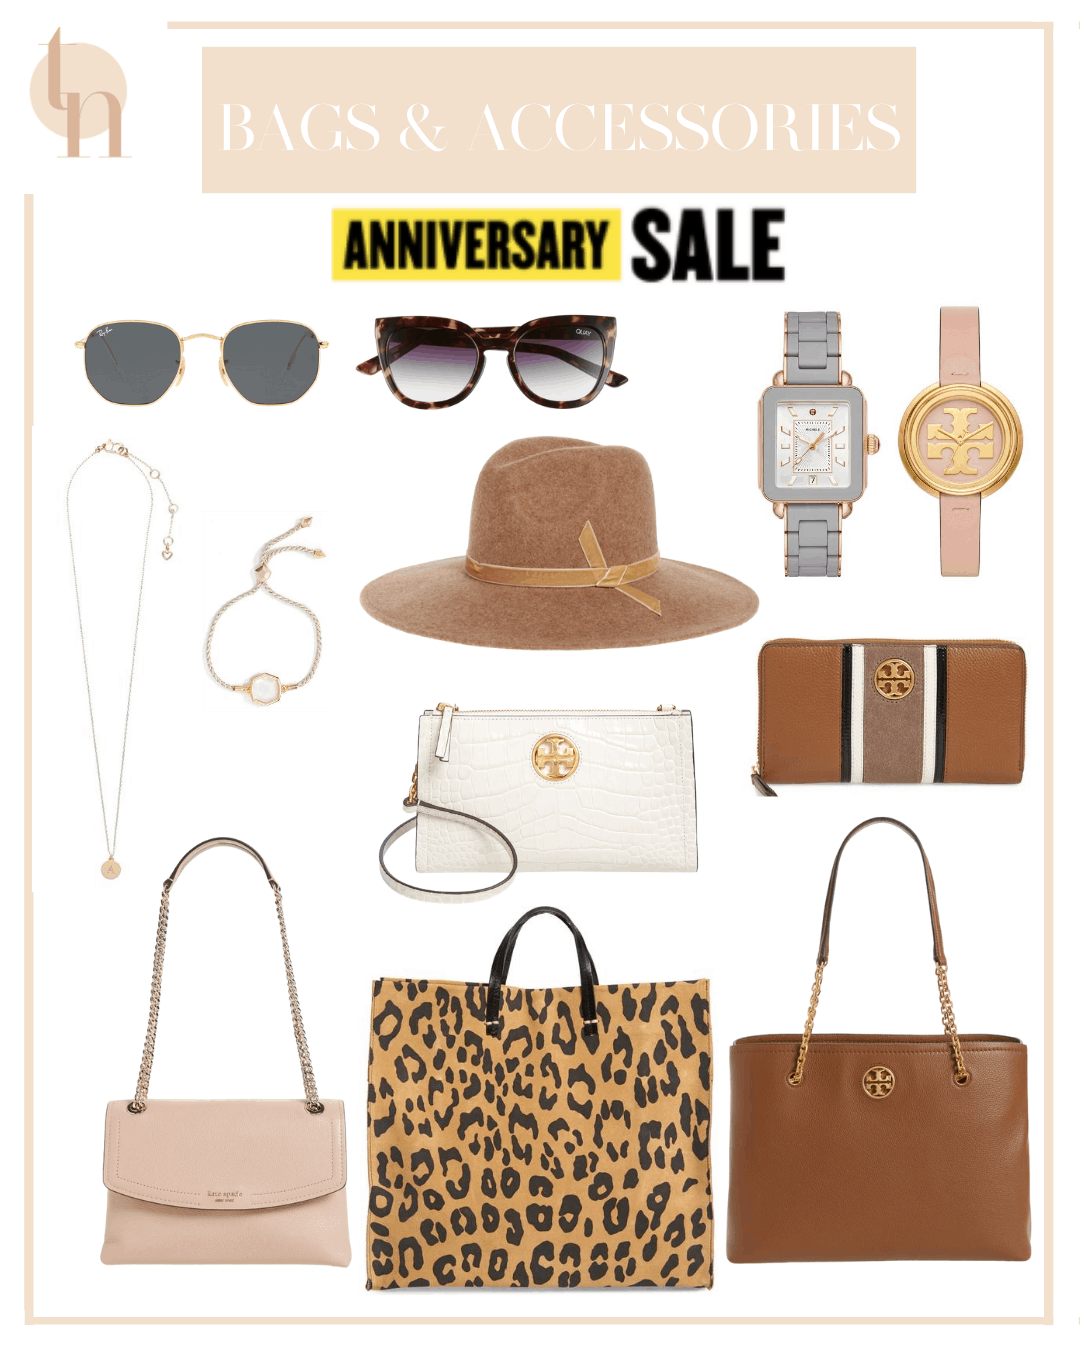 Nordstrom Anniversary Sale by popular Dallas life and style blog, Glamorous Versatility: collage image of Nordstrom Tory Burch Deco Wallet, Tory Burch Black Wallet, Tory Burch Tote, Kate Spade Initial Necklace, Kate Spade Handbag, Ray-Ban Sunglasses, Quay Sunglasses, Clare V. Leopard Print Tote, Leather Belt, Tory Burch Leather Wallet, Tory Burch Gold Watch, and Kendra Scott Bracelets.